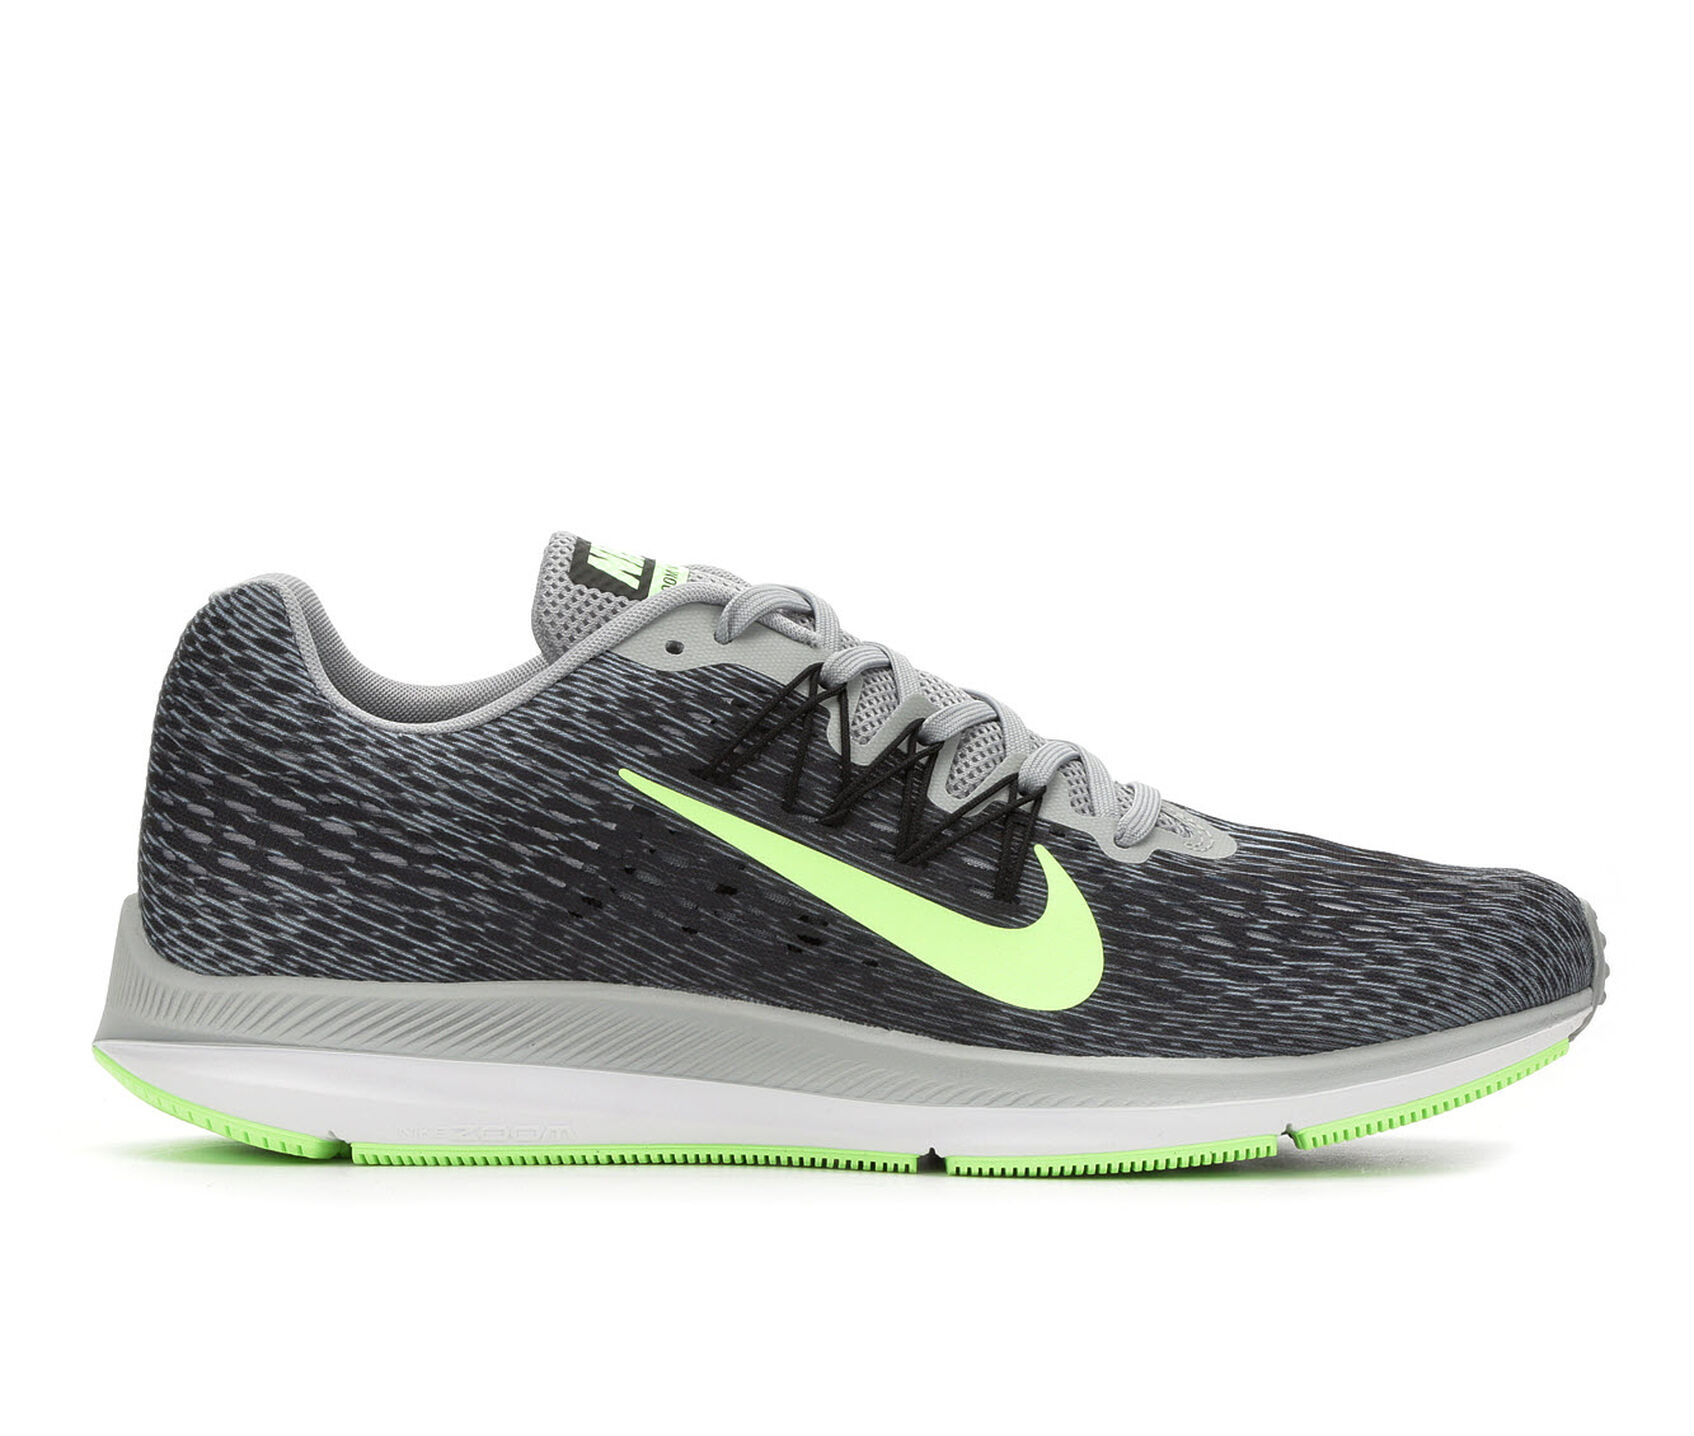 adae56d0e6213 ... Nike Zoom Winflo 5 Running Shoes. Previous